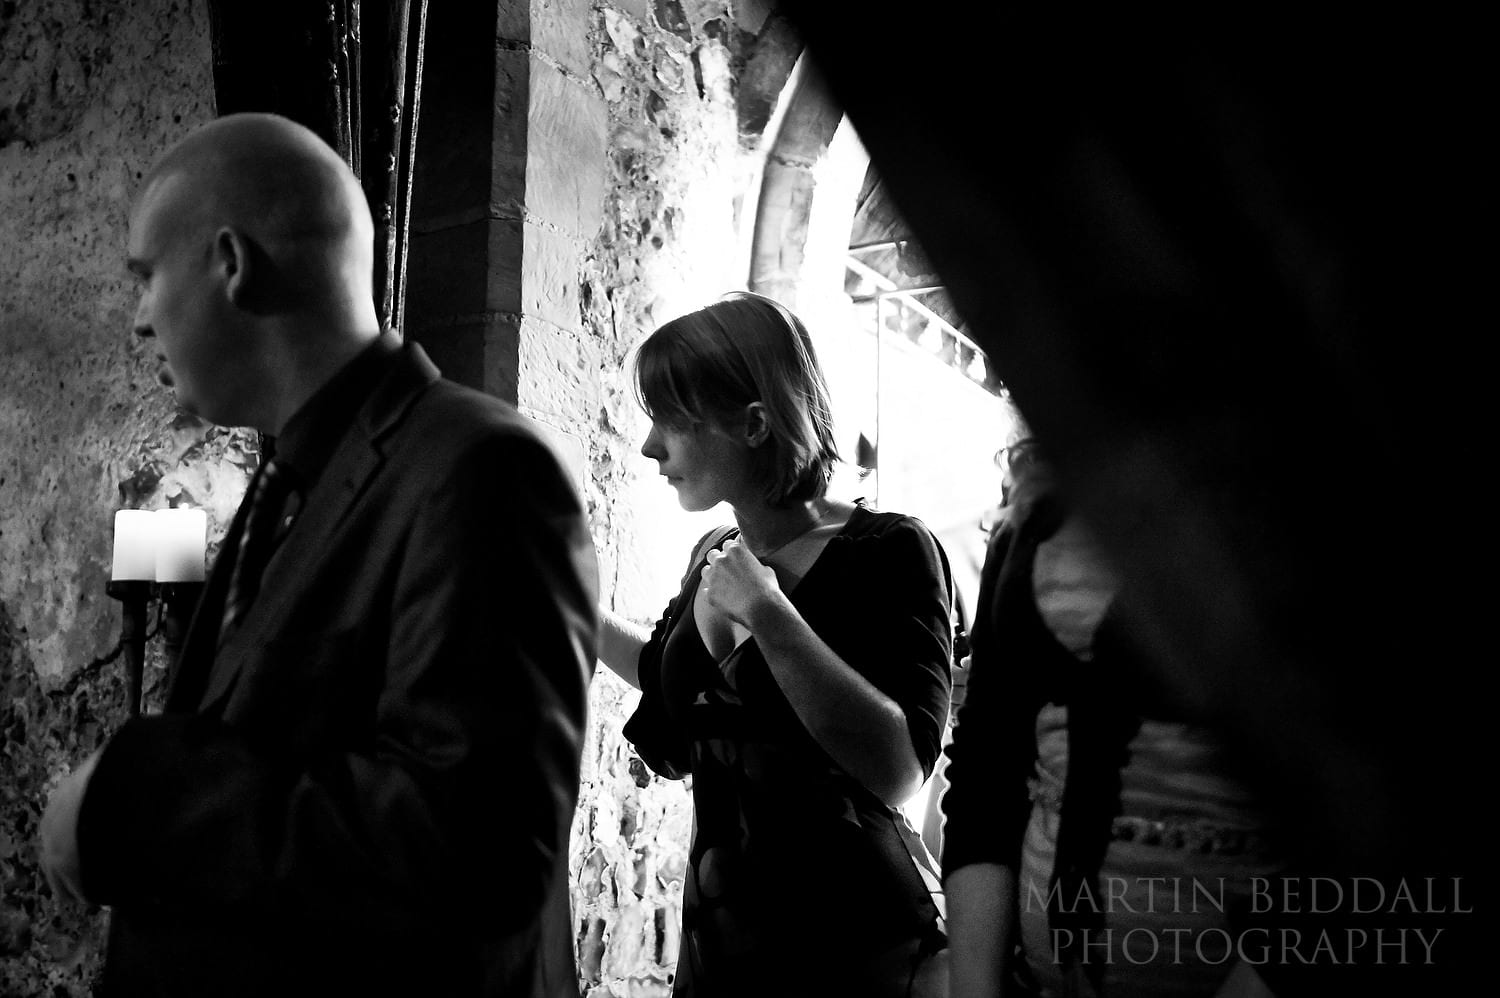 Guests head back into the chapel for the wedding meal